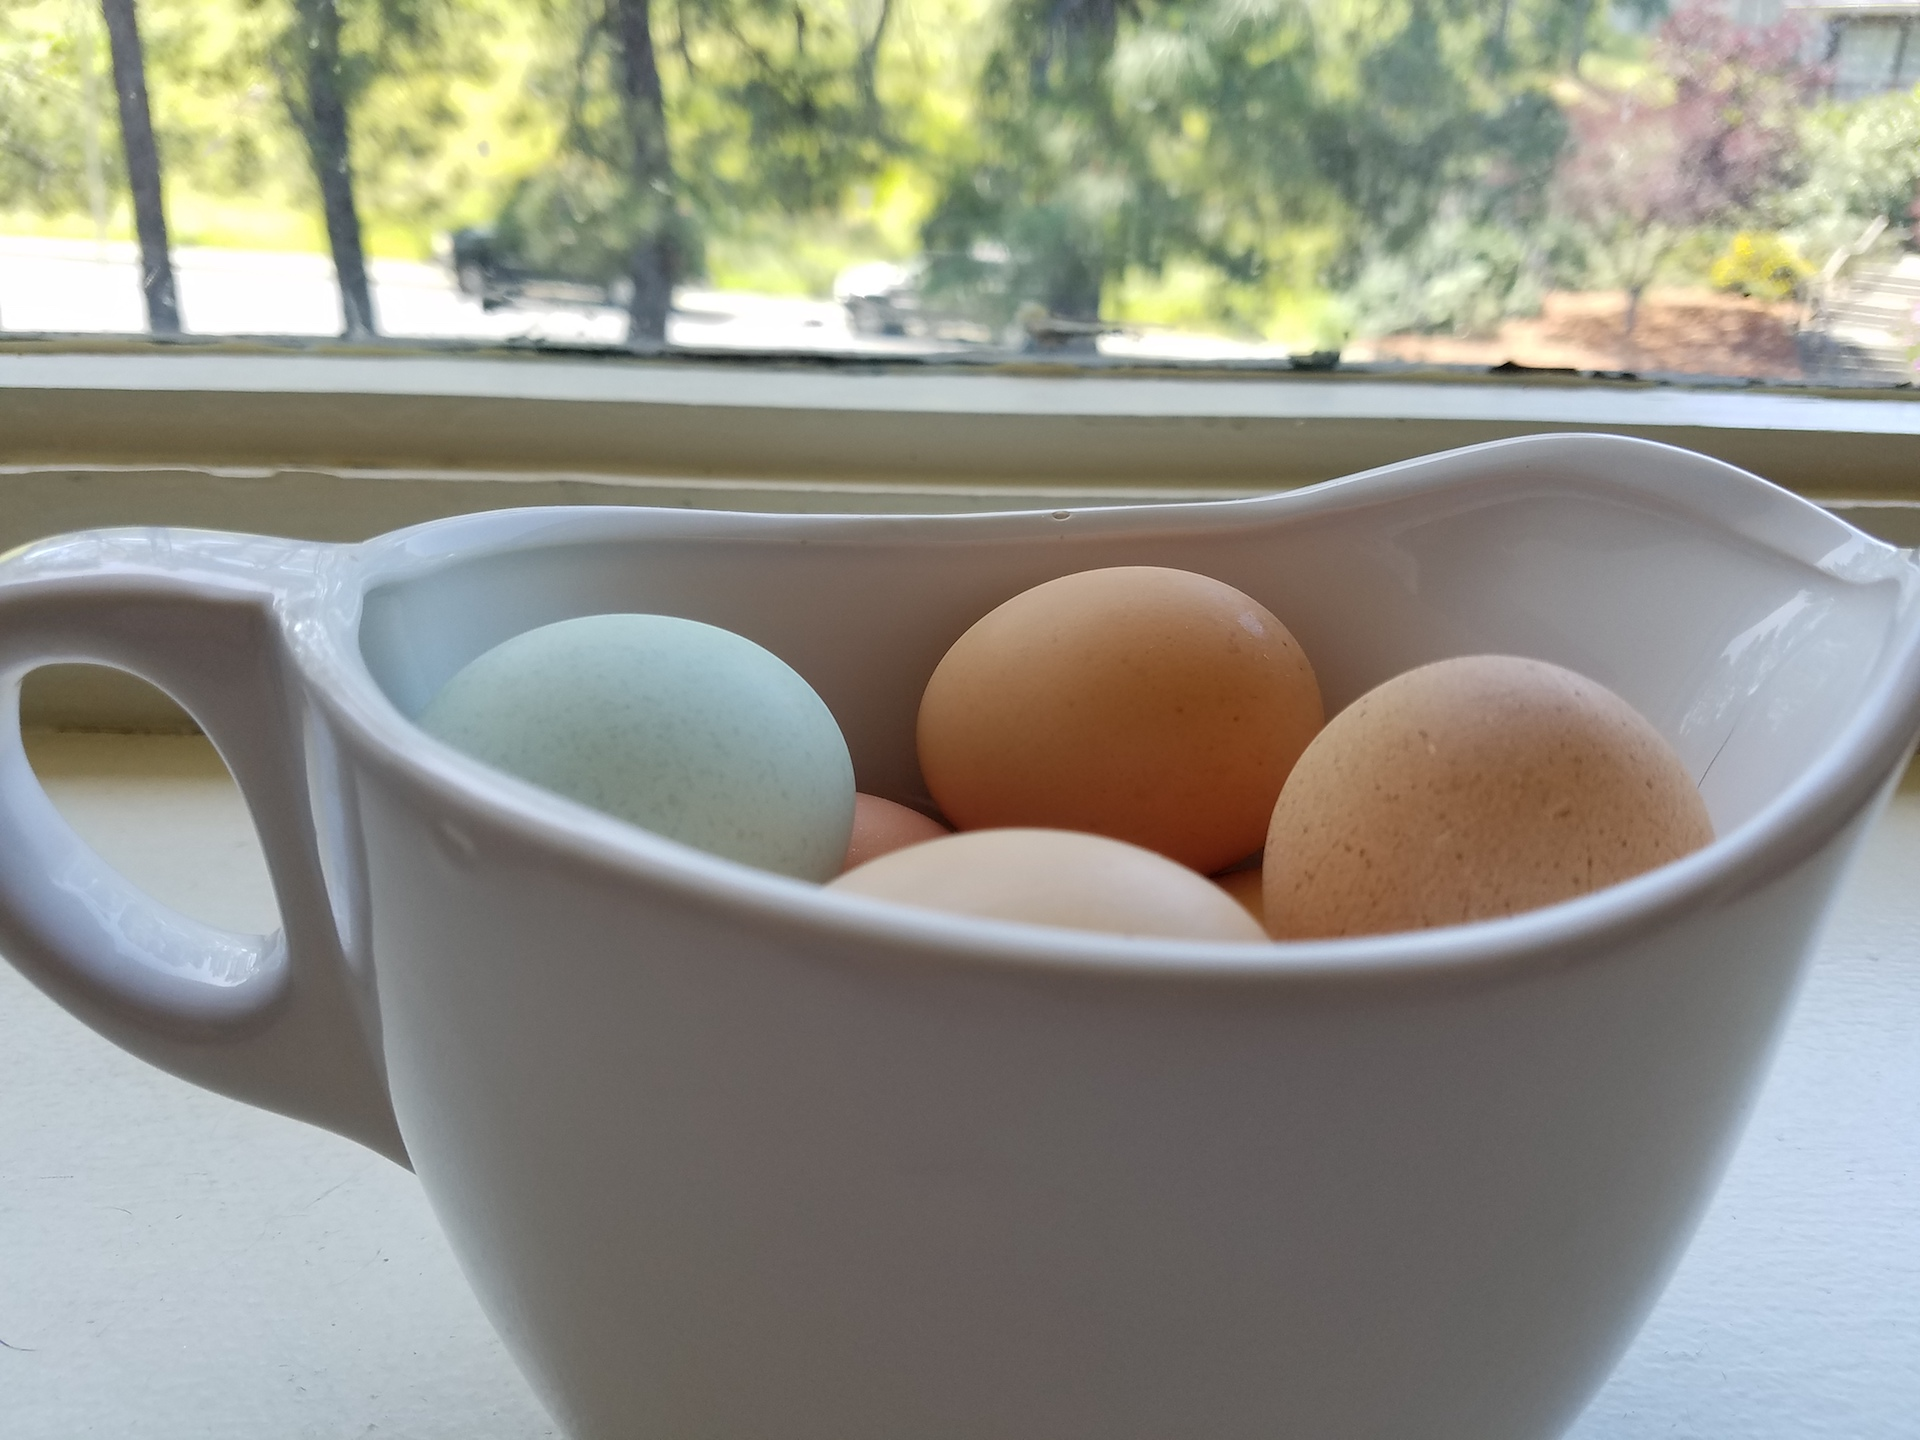 The multi-colored eggs.